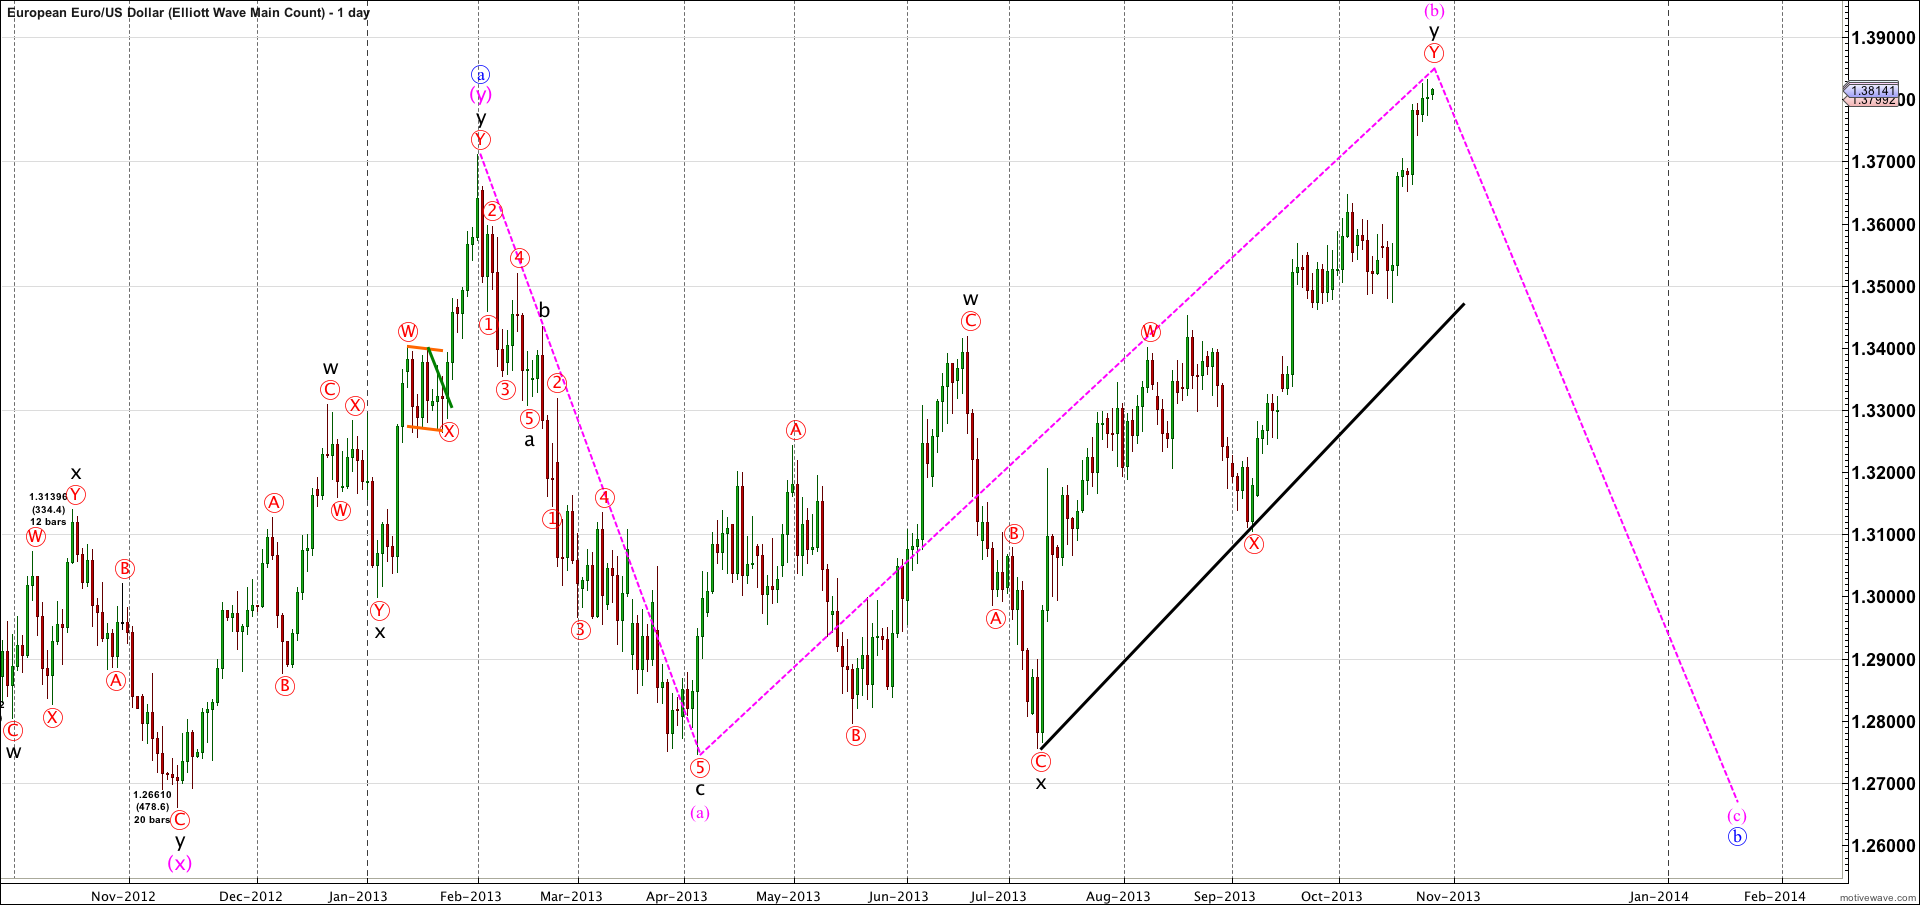 EURUSD-Elliott-Wave-Main-Count-Oct-27-2049-PM-1-day